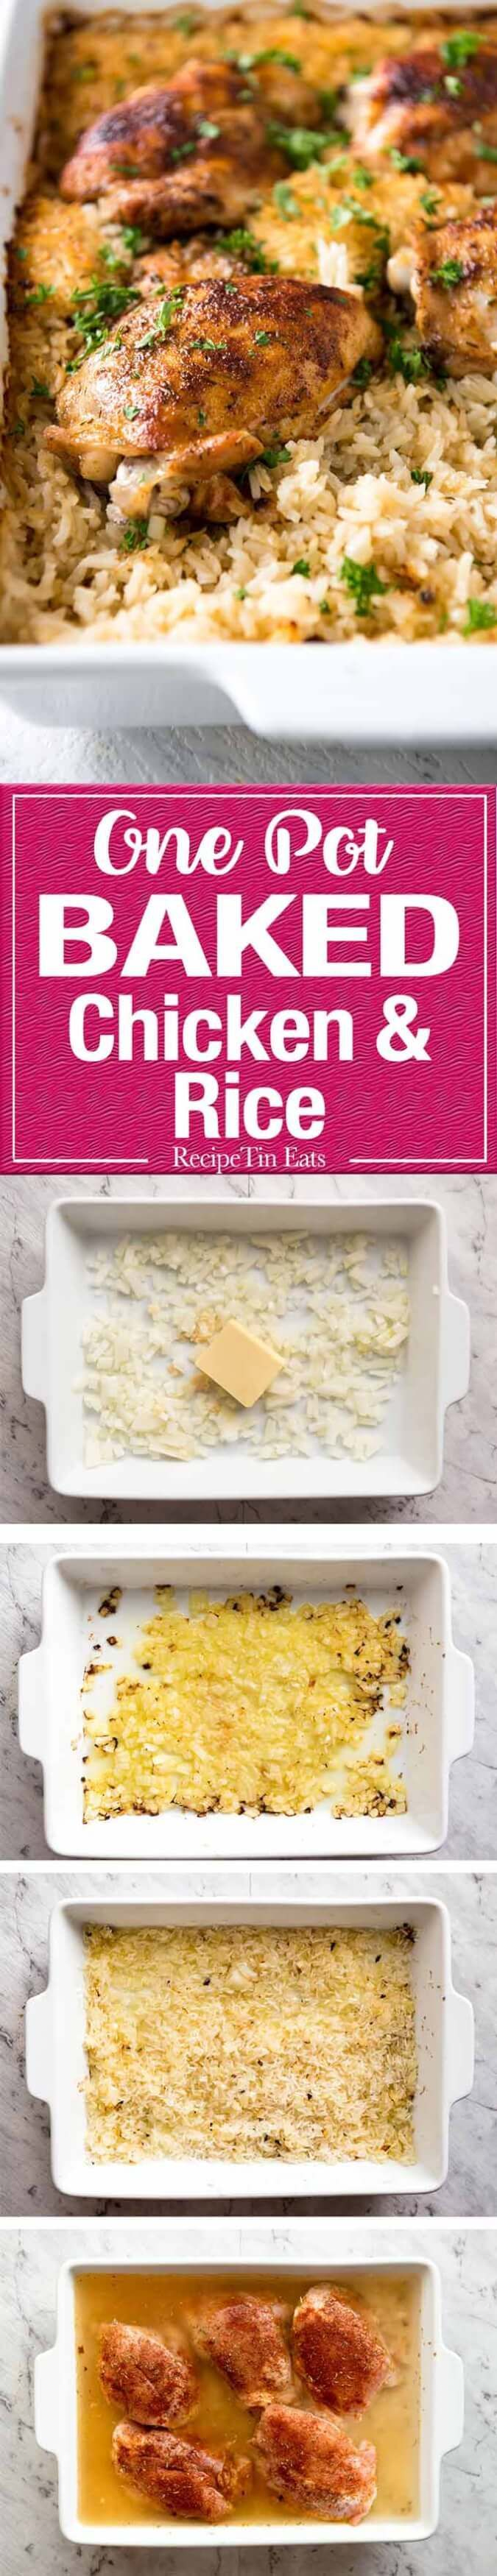 Oven Baked Chicken & Rice made in one pan, no stove. The step that makes all the difference is baking butter and onion before adding rice, liquid and the chicken. The rice is outrageously delicious! www.recipetineats.com